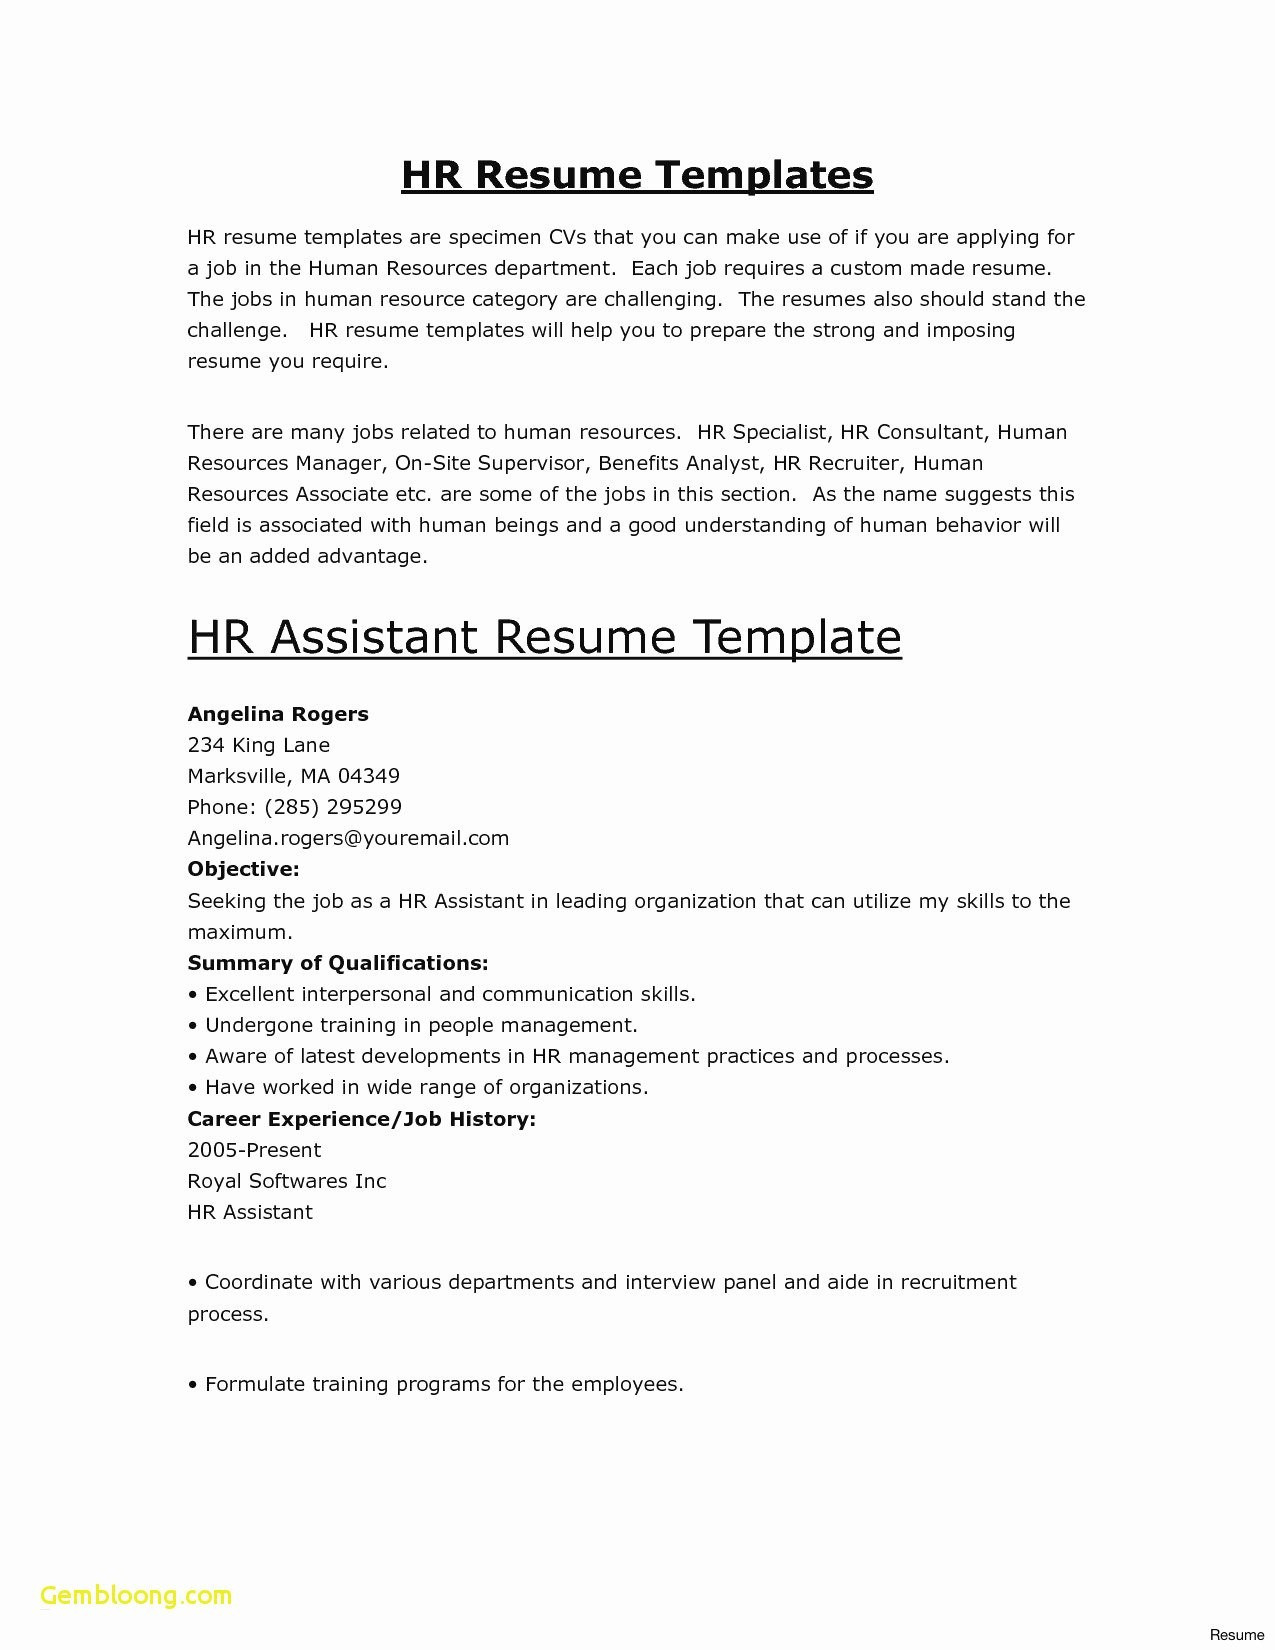 good resume layout example-Graphic Design Job Description Resume Fresh Best Resumes Ever Awesome Resume Examples Pdf Best Resume Pdf 0d 1-h